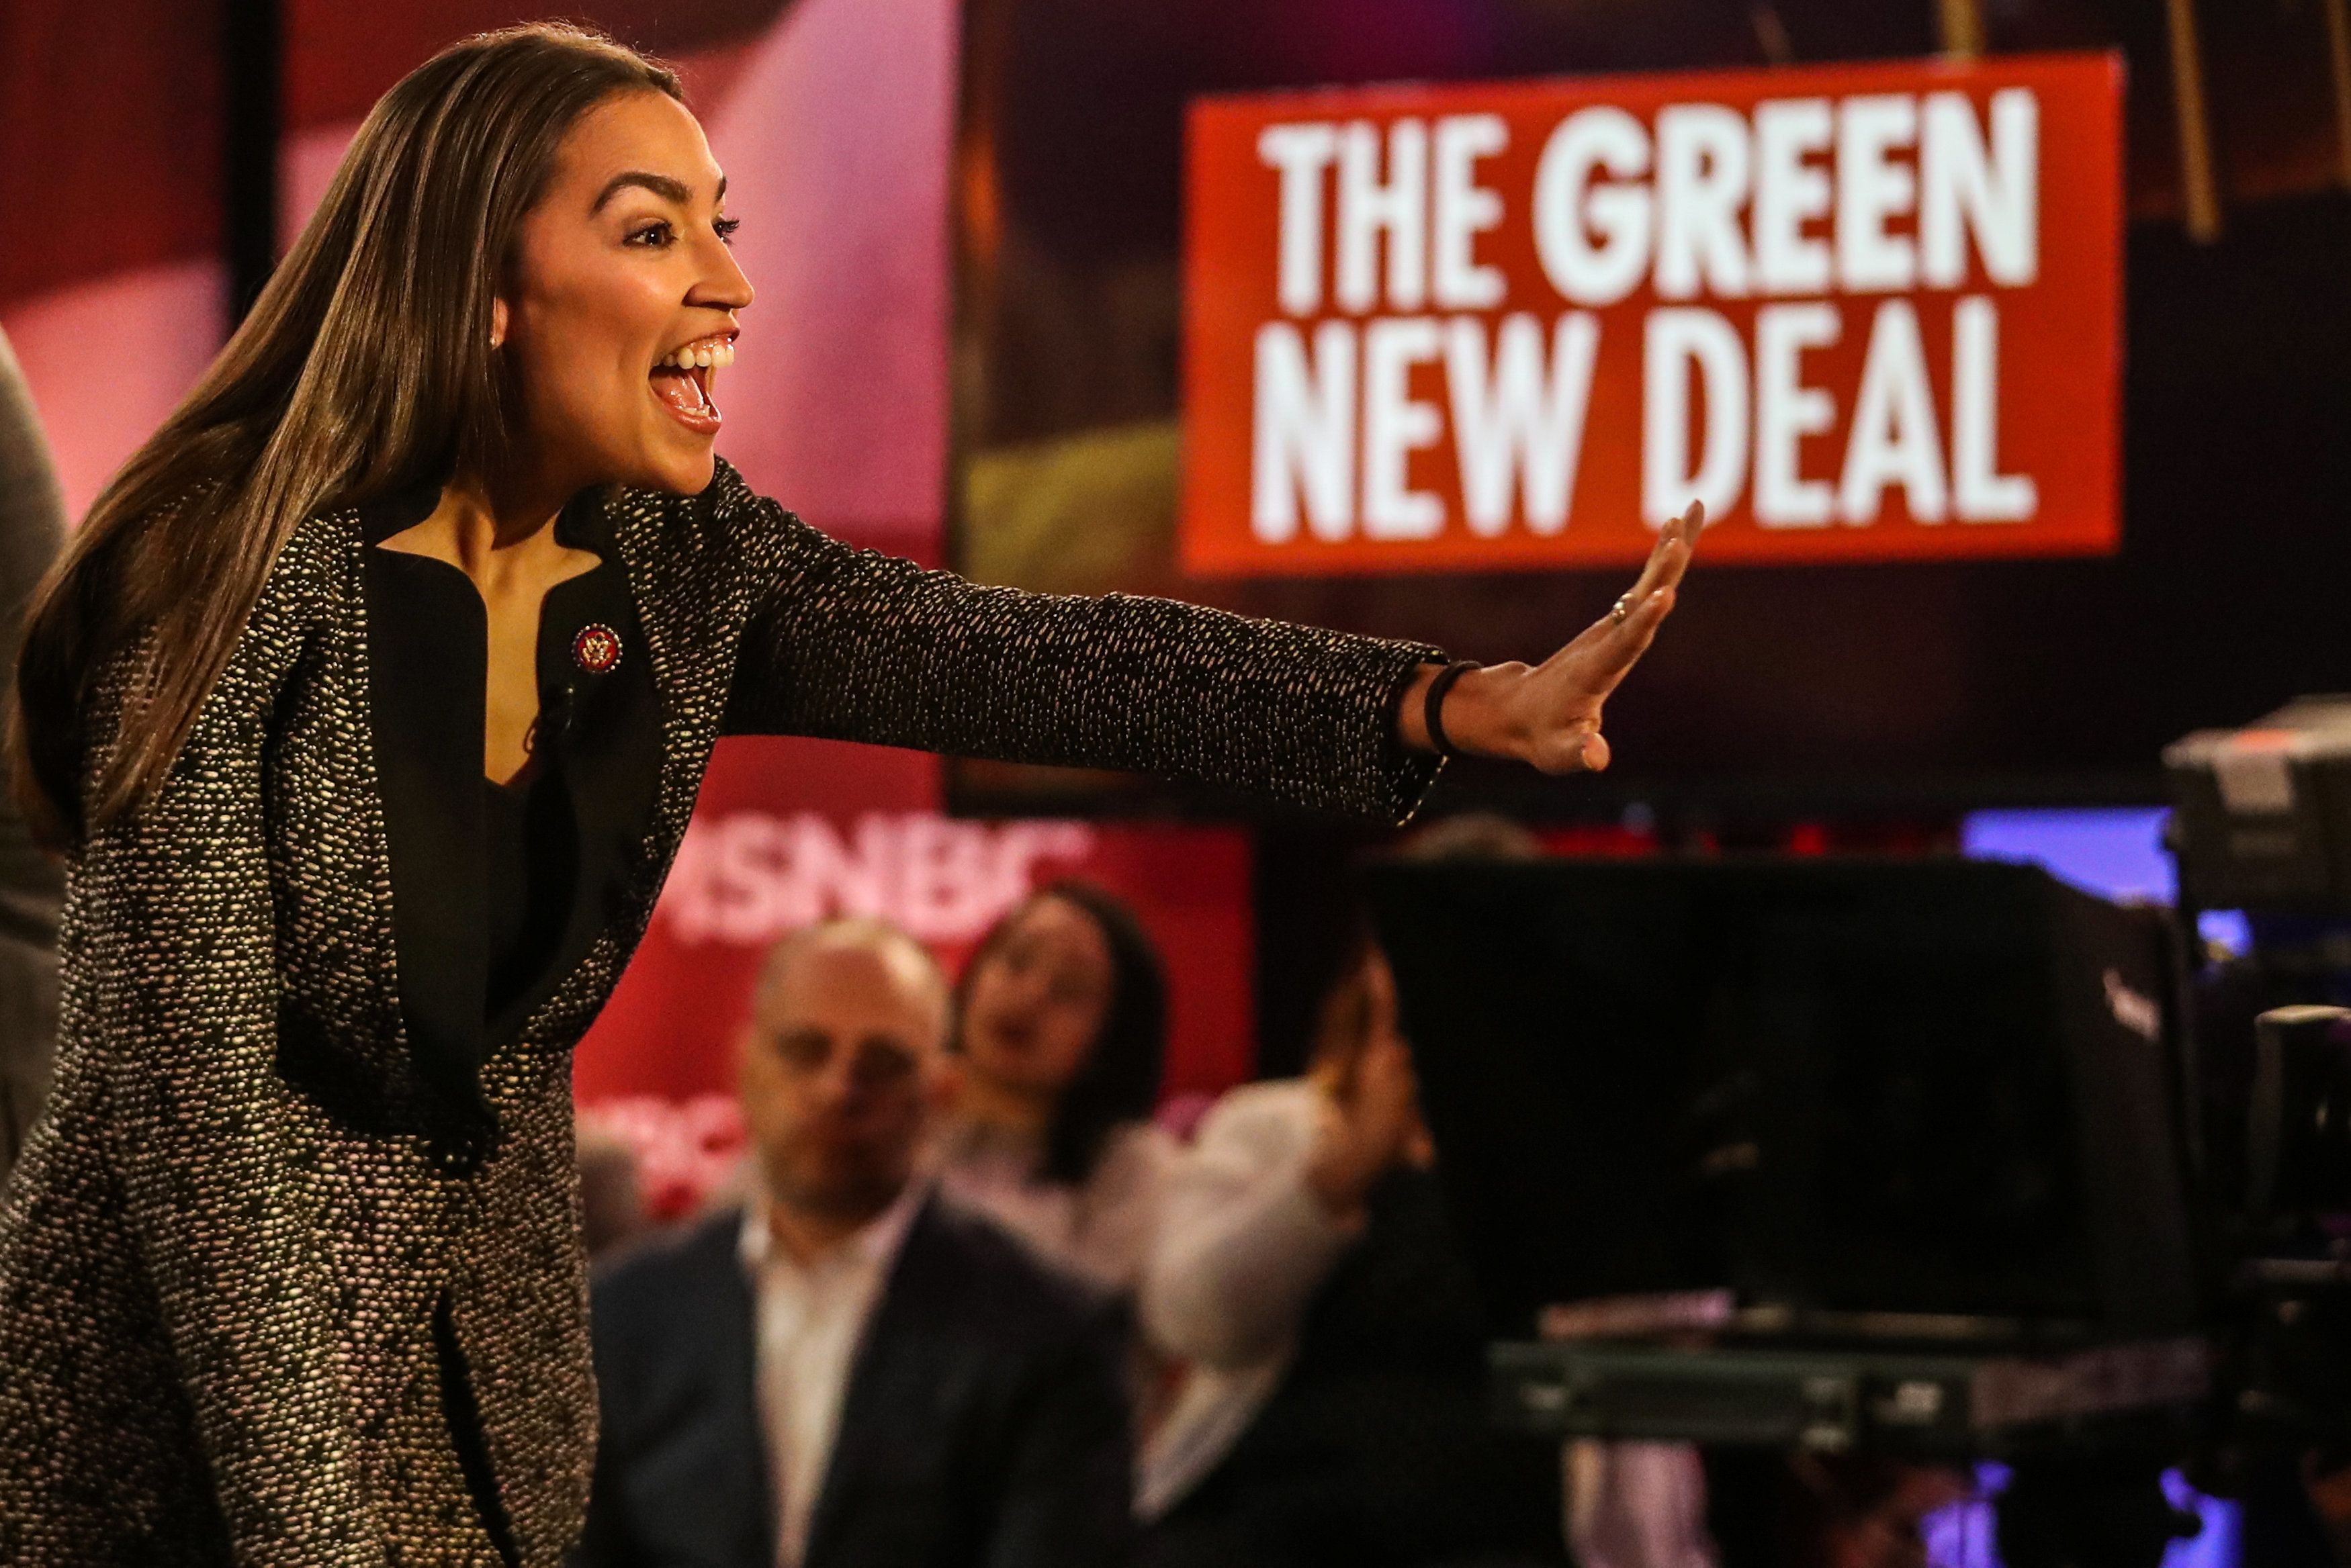 "U.S. Representative Alexandria Ocasio-Cortez (D-NY) greets audiences following a televised town hall event on the ""Green New Deal"" in the Bronx borough of New York City, New York, U.S., March 29, 2019. REUTERS/Jeenah Moon"